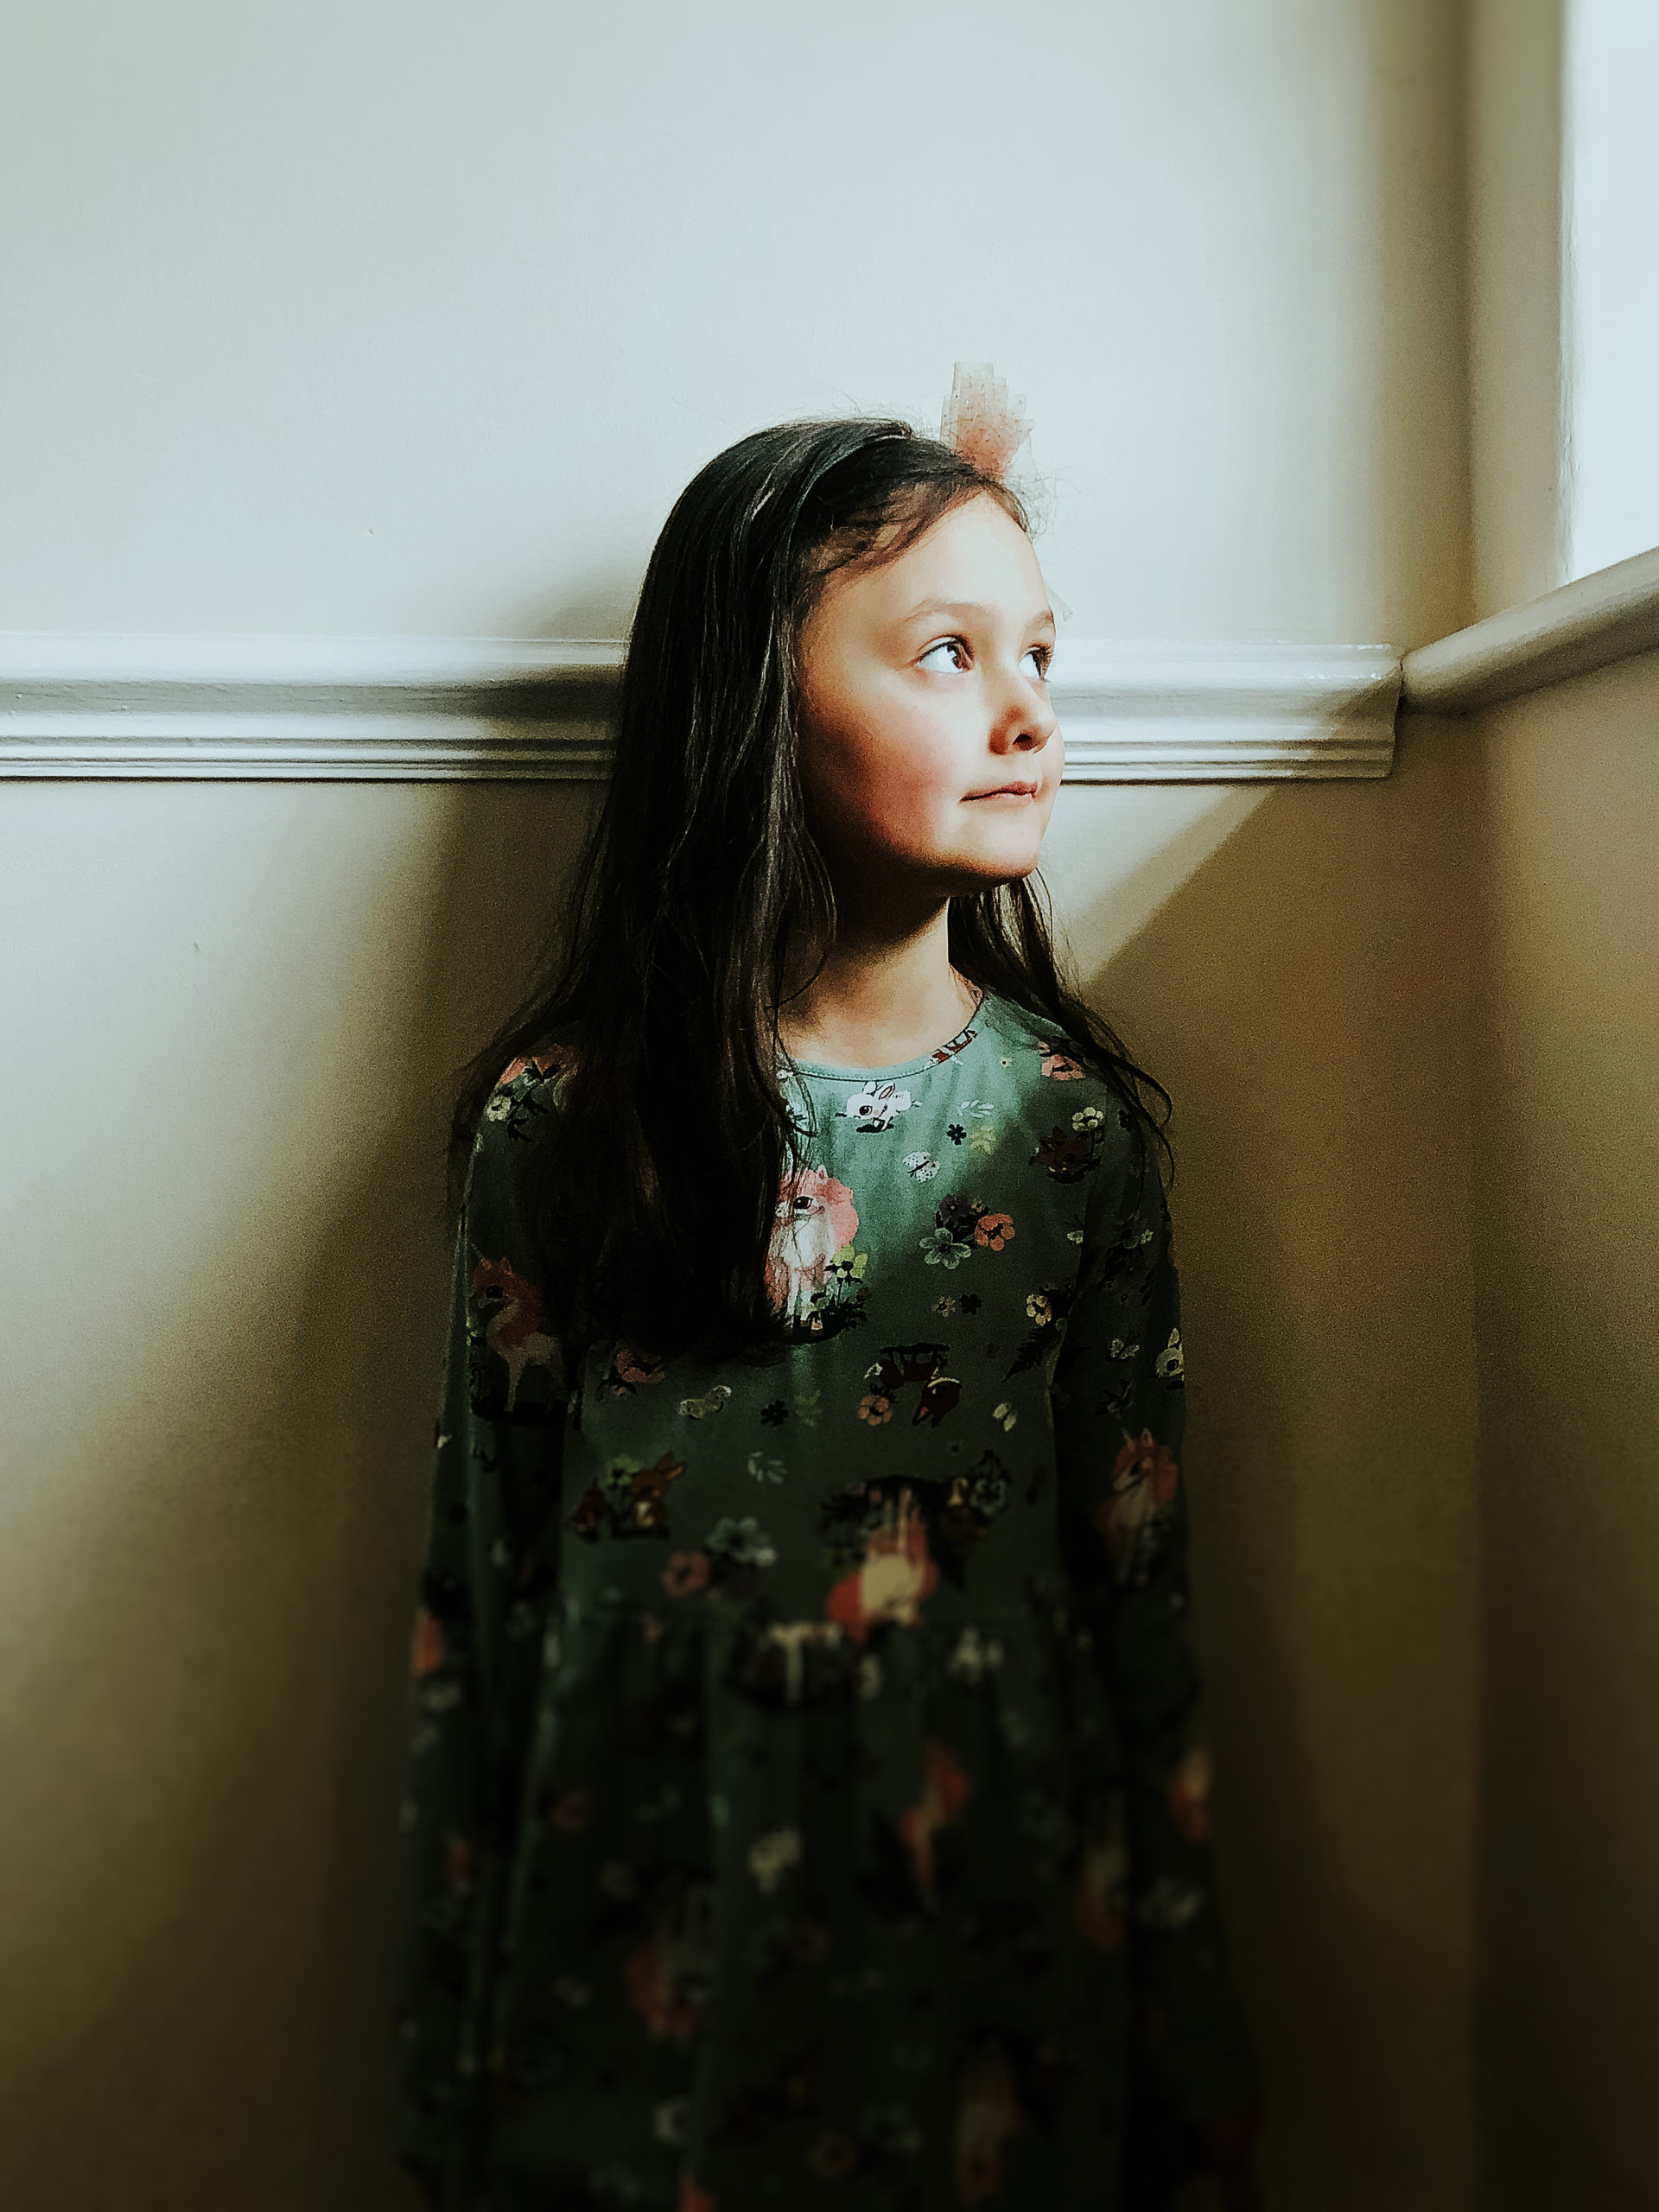 Portrait of a young girl looking out a window